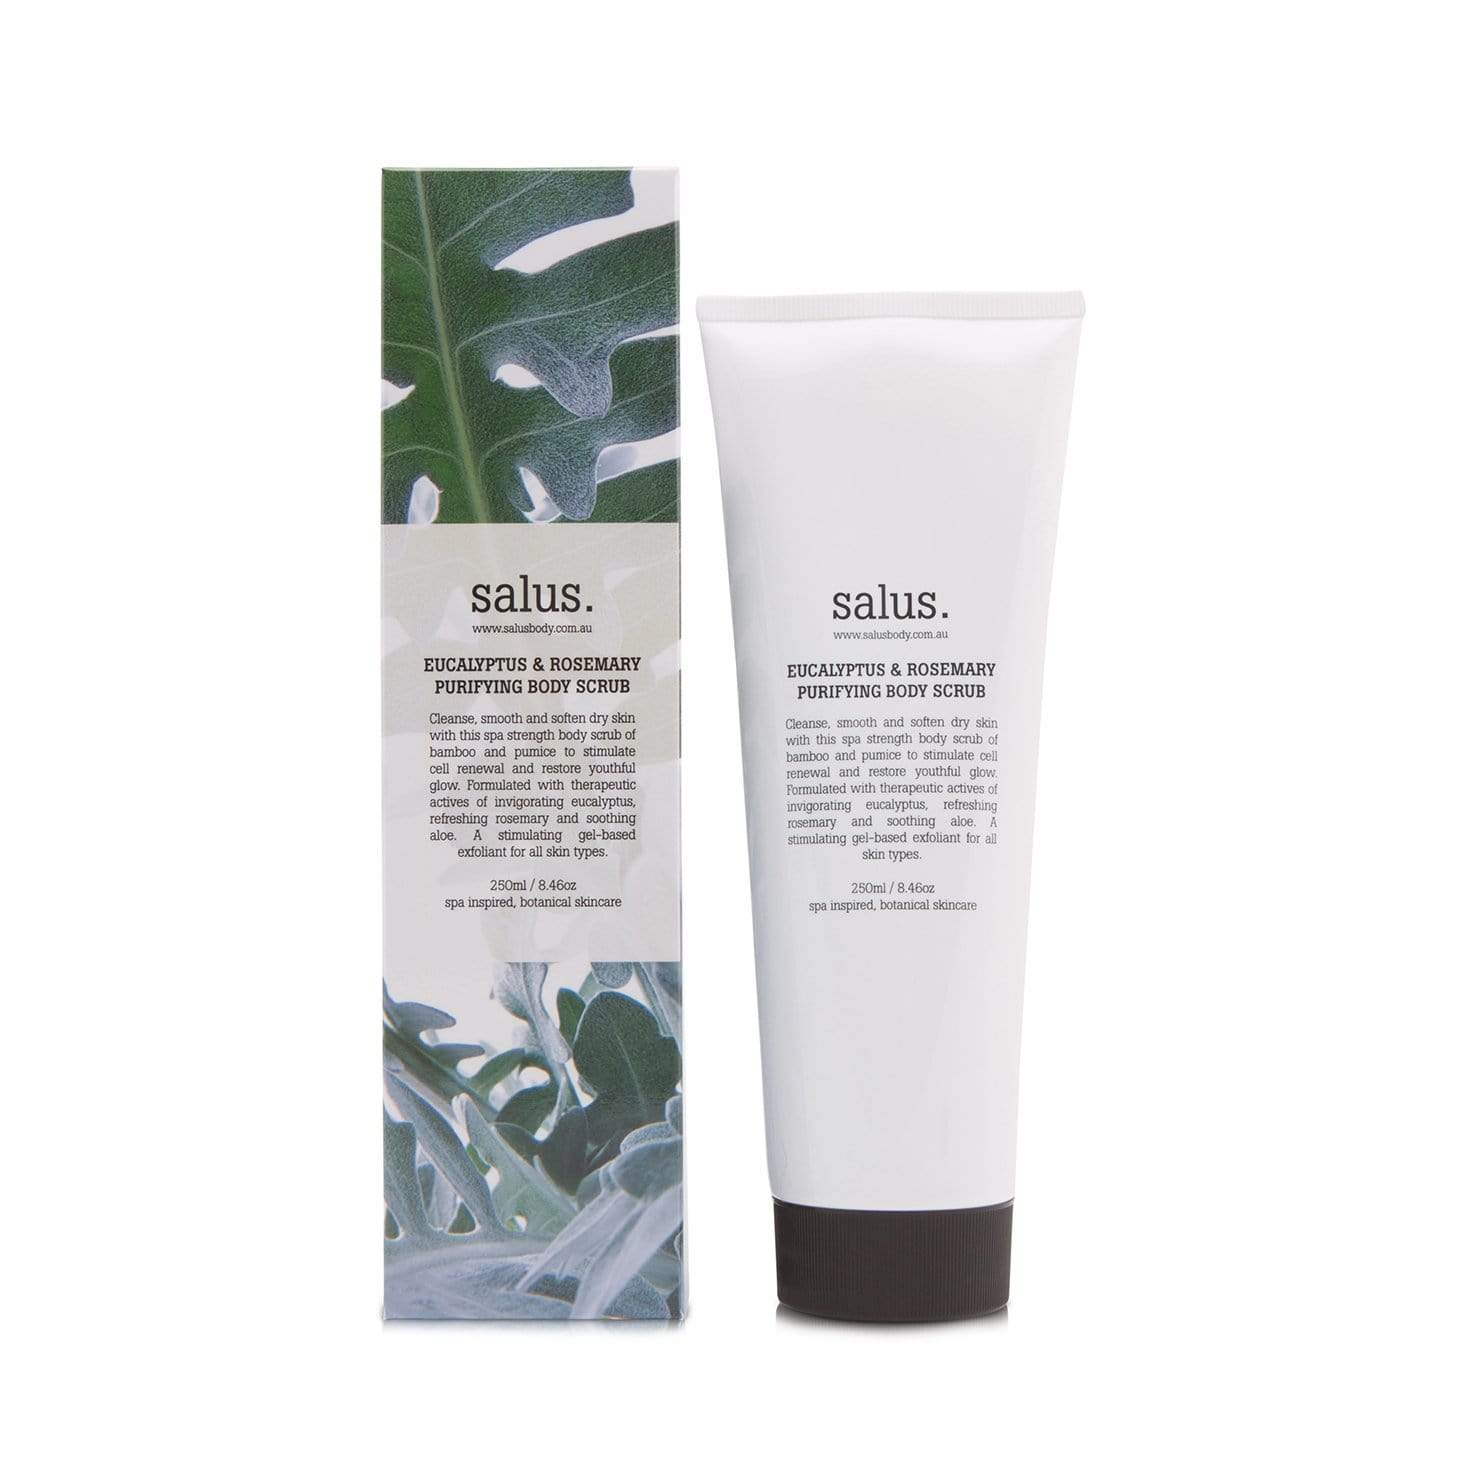 Salus Eucalyptus + Rosemary Purifying Body Scrub